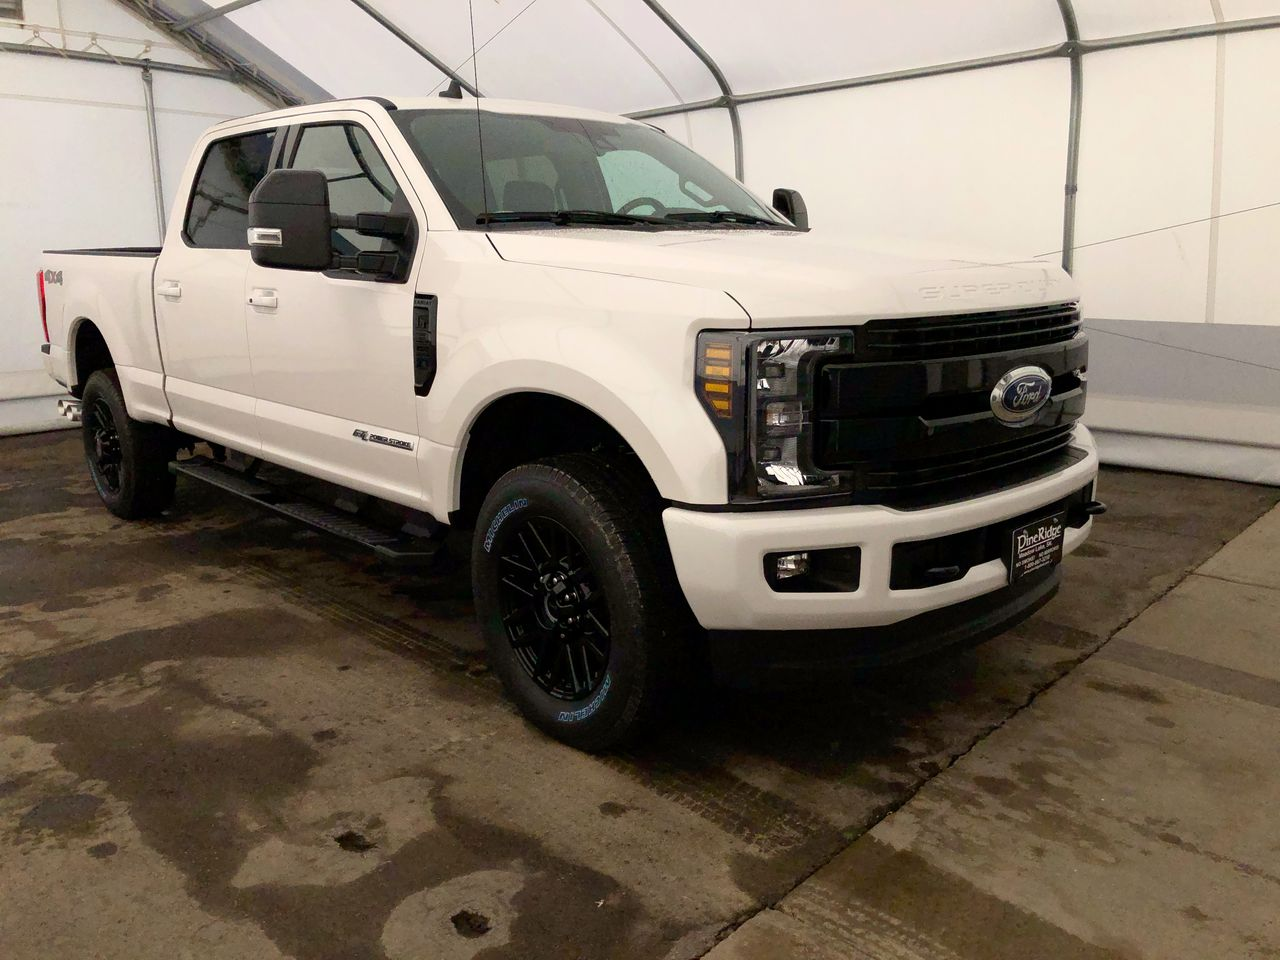 2019 Ford F-350 Super Duty Lariat (0N6455) Main Image